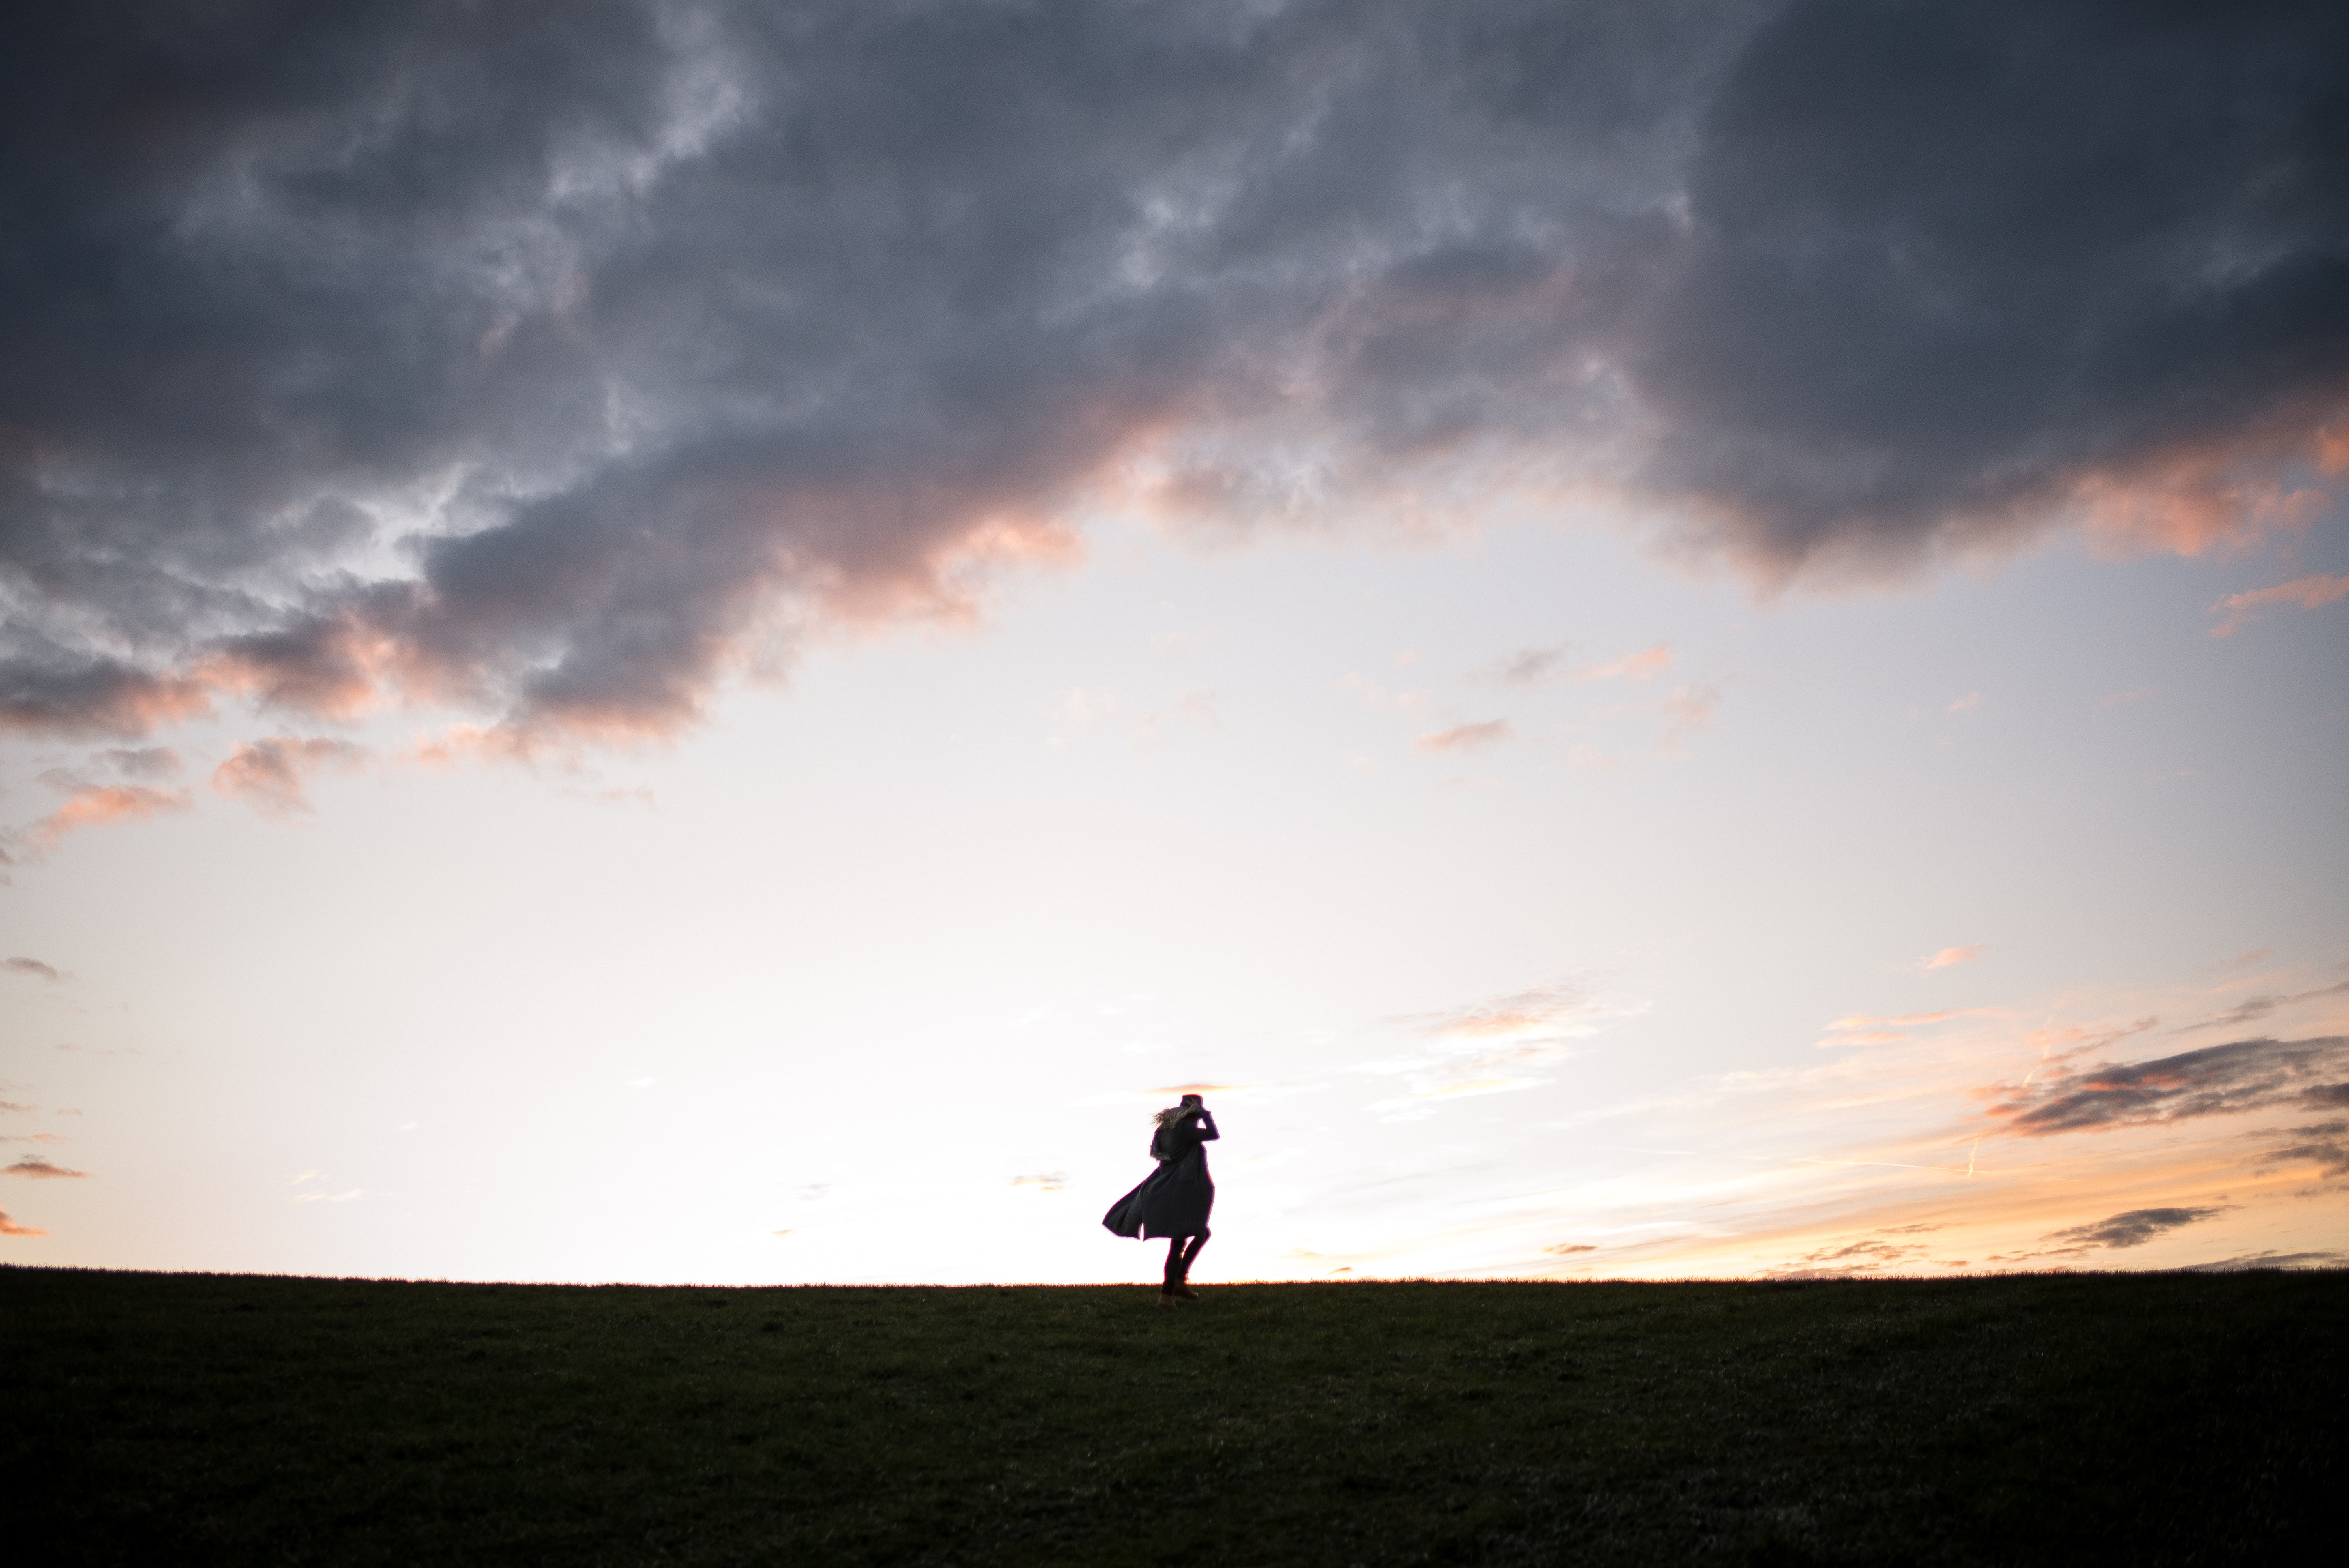 silhouette of man standing on ground under cloudy sky